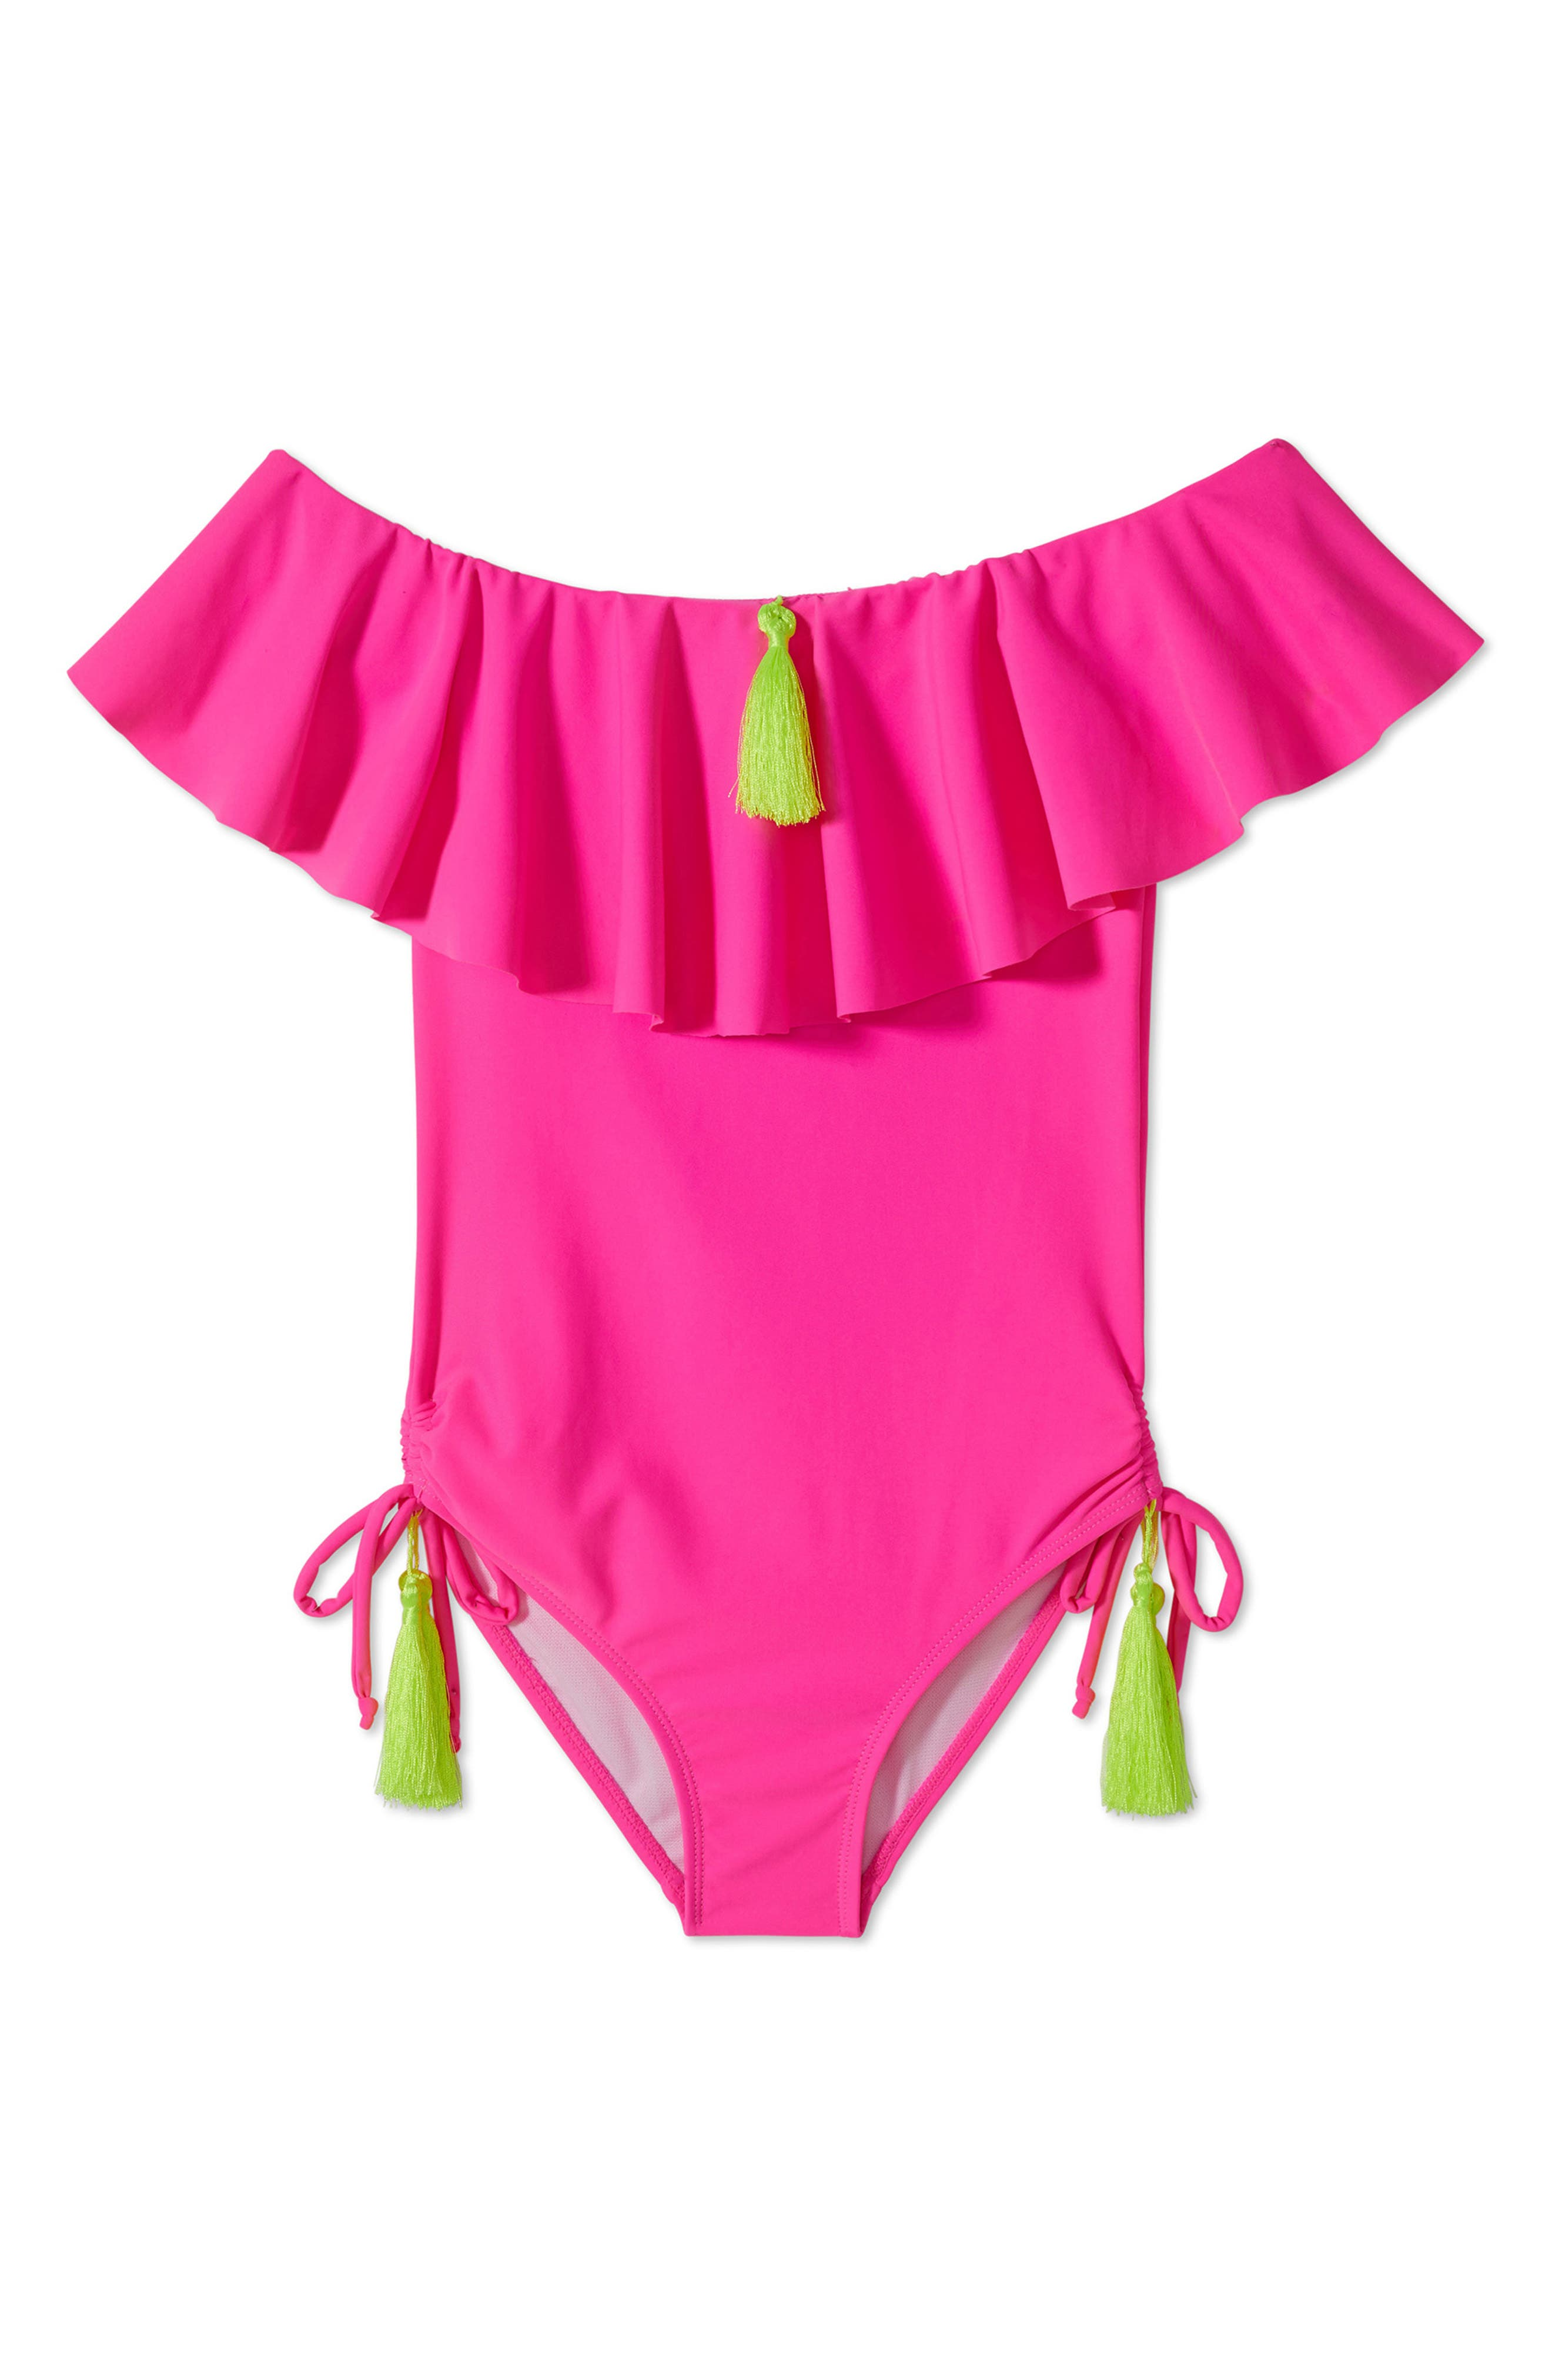 STELLA COVE, Ruffle One-Piece Swimsuit, Main thumbnail 1, color, PINK